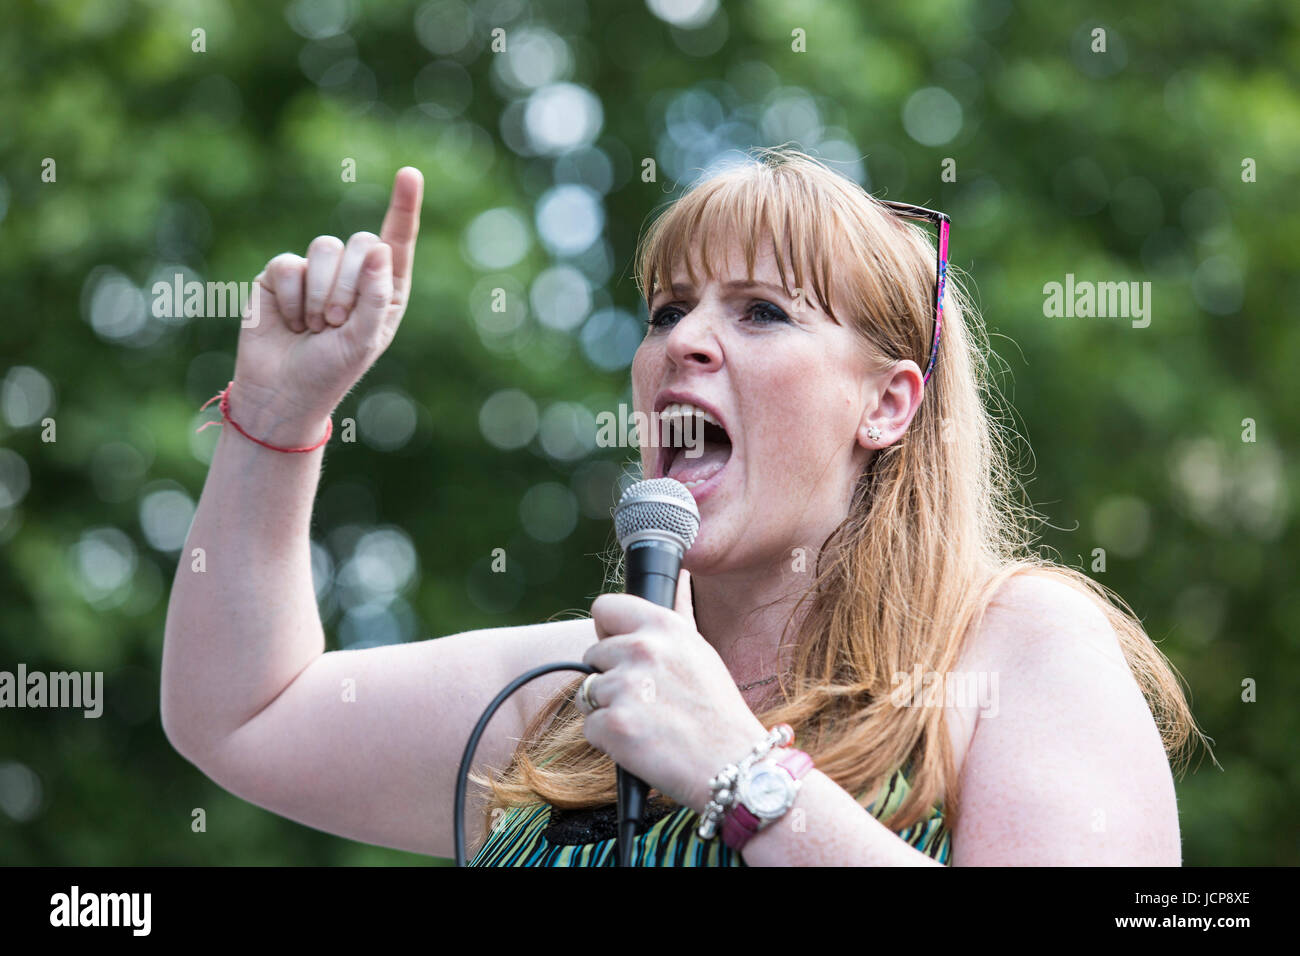 London, UK. 17 June 2017. Labour MP Angela Rayner. Londoners protest against Prime Minister Theresa May in relation - Stock Image